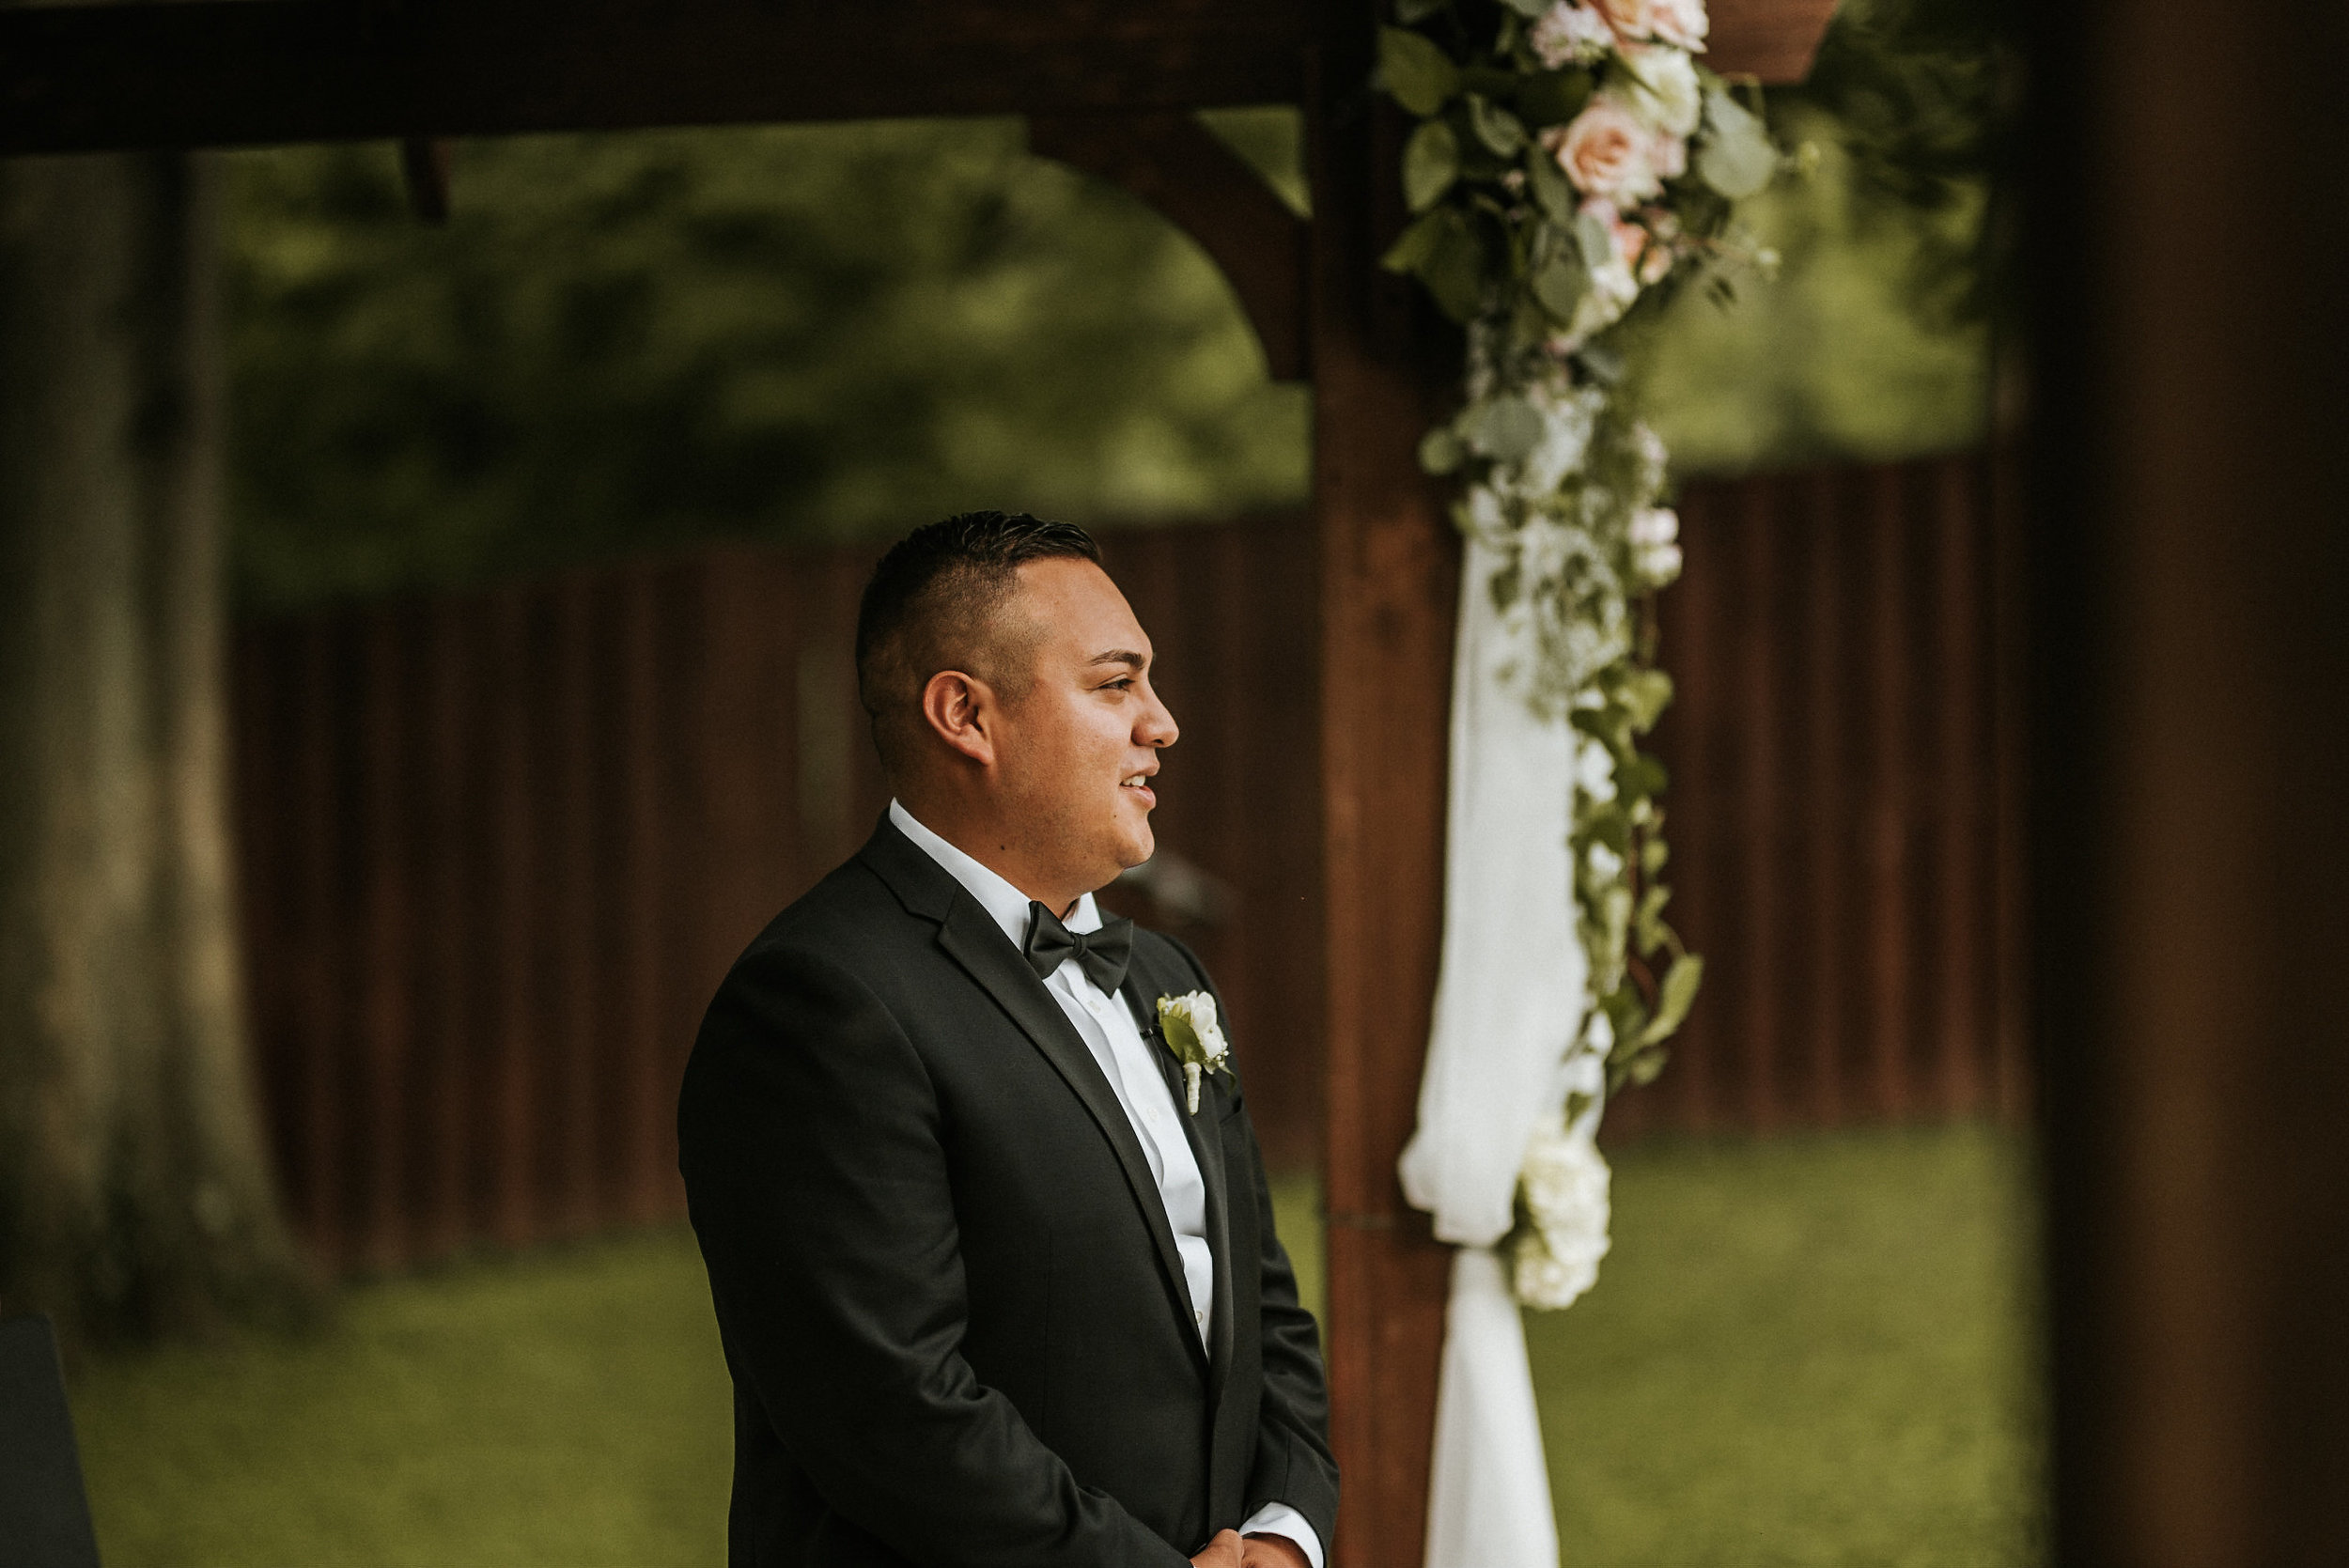 Groom at front of aisle during ceremony